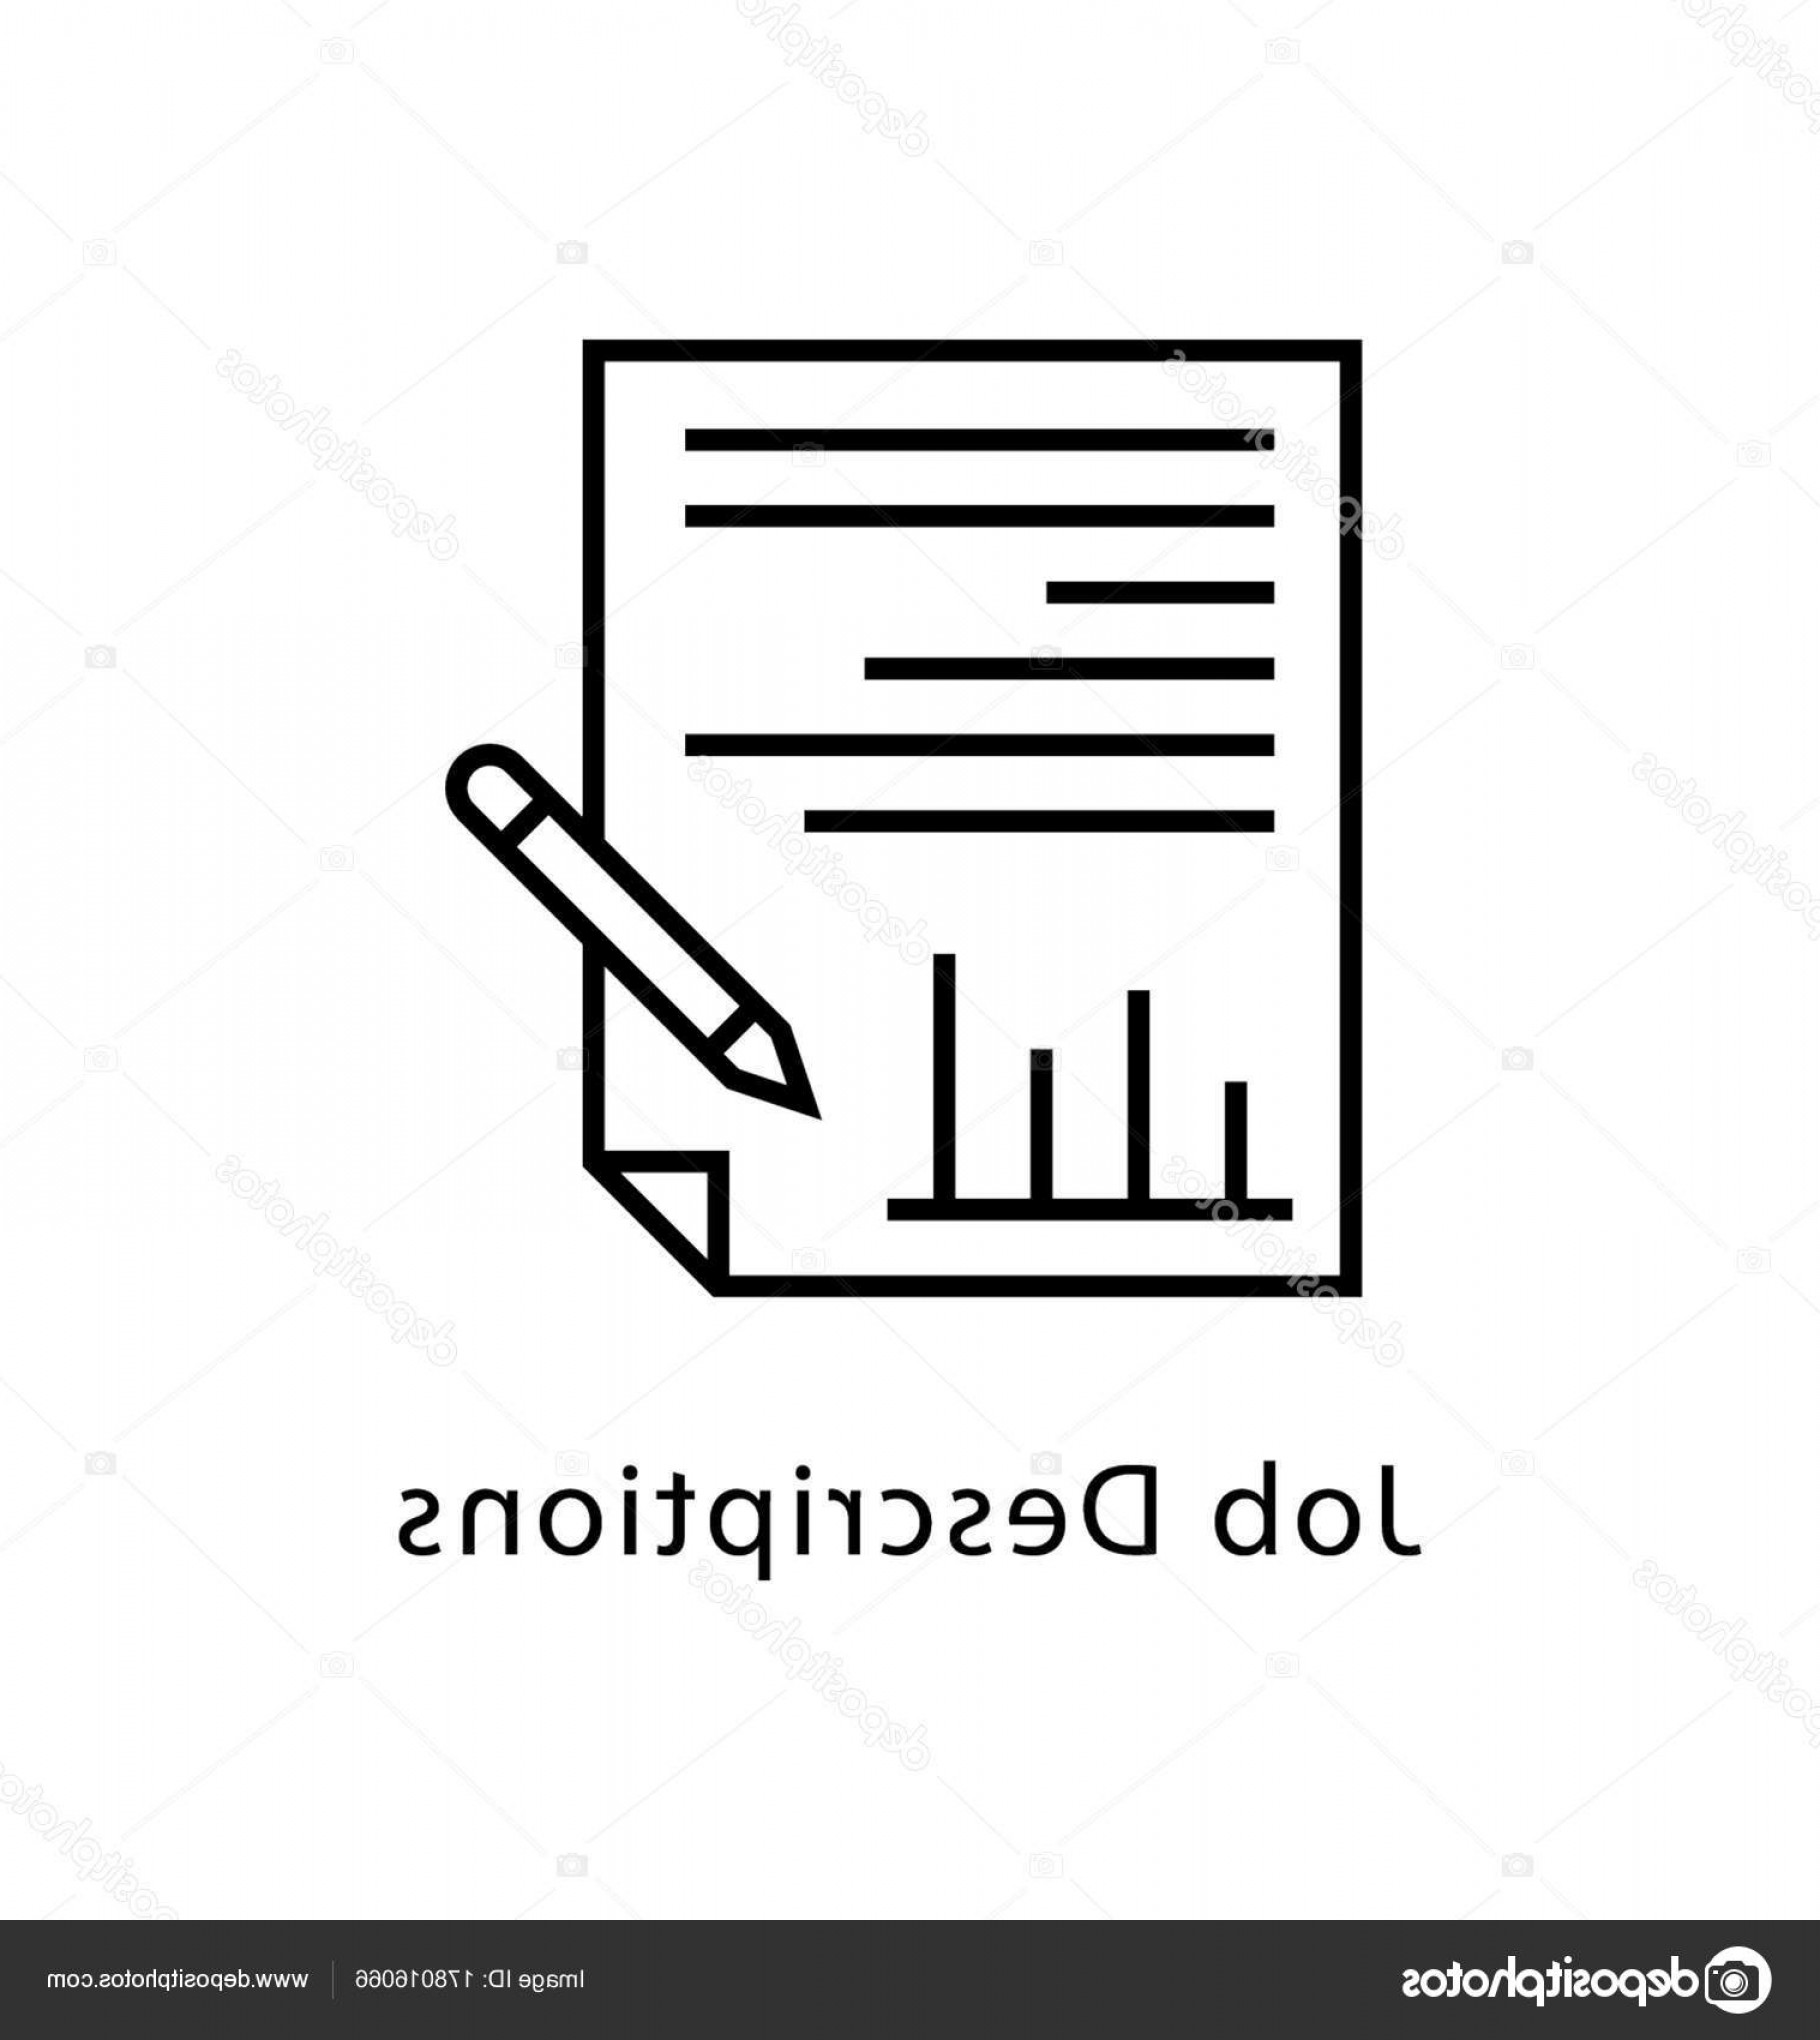 Vectors Job Description: Stock Illustration Job Description Vector Line Icon